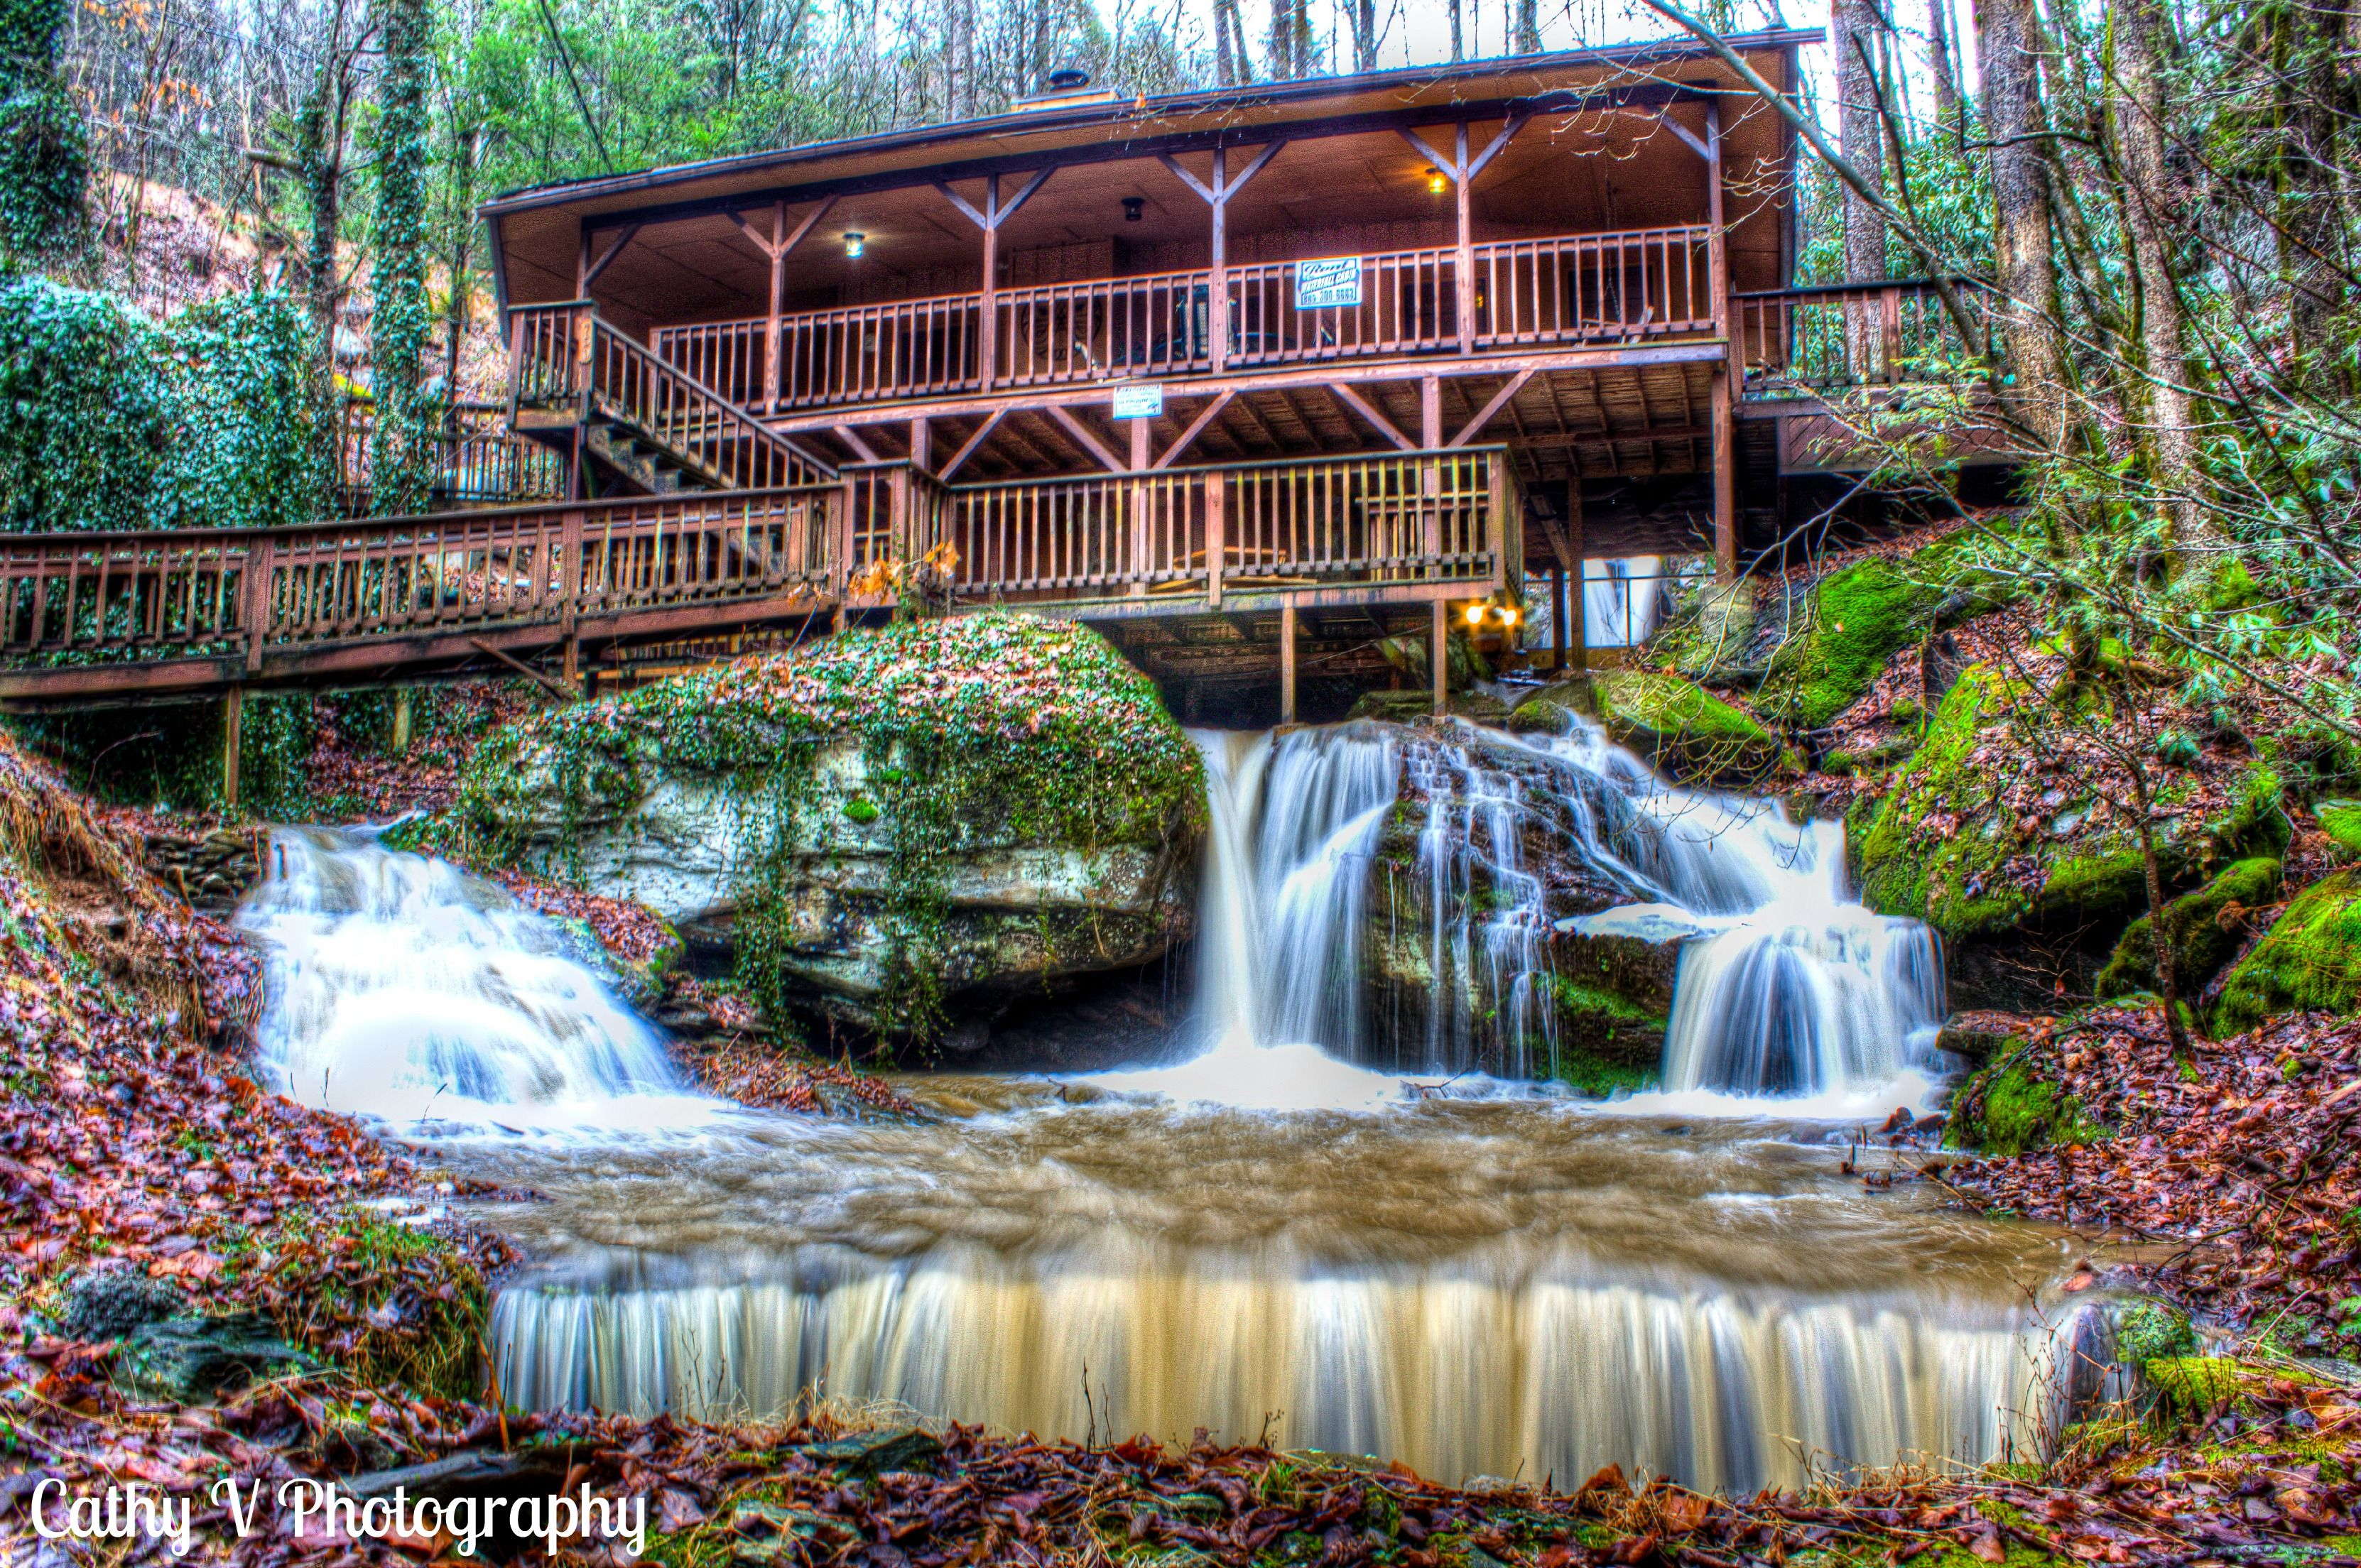 Gorgeous Waterfall Cabin Located In Pigeon Forge,TN  Www.cathyvphotography.com